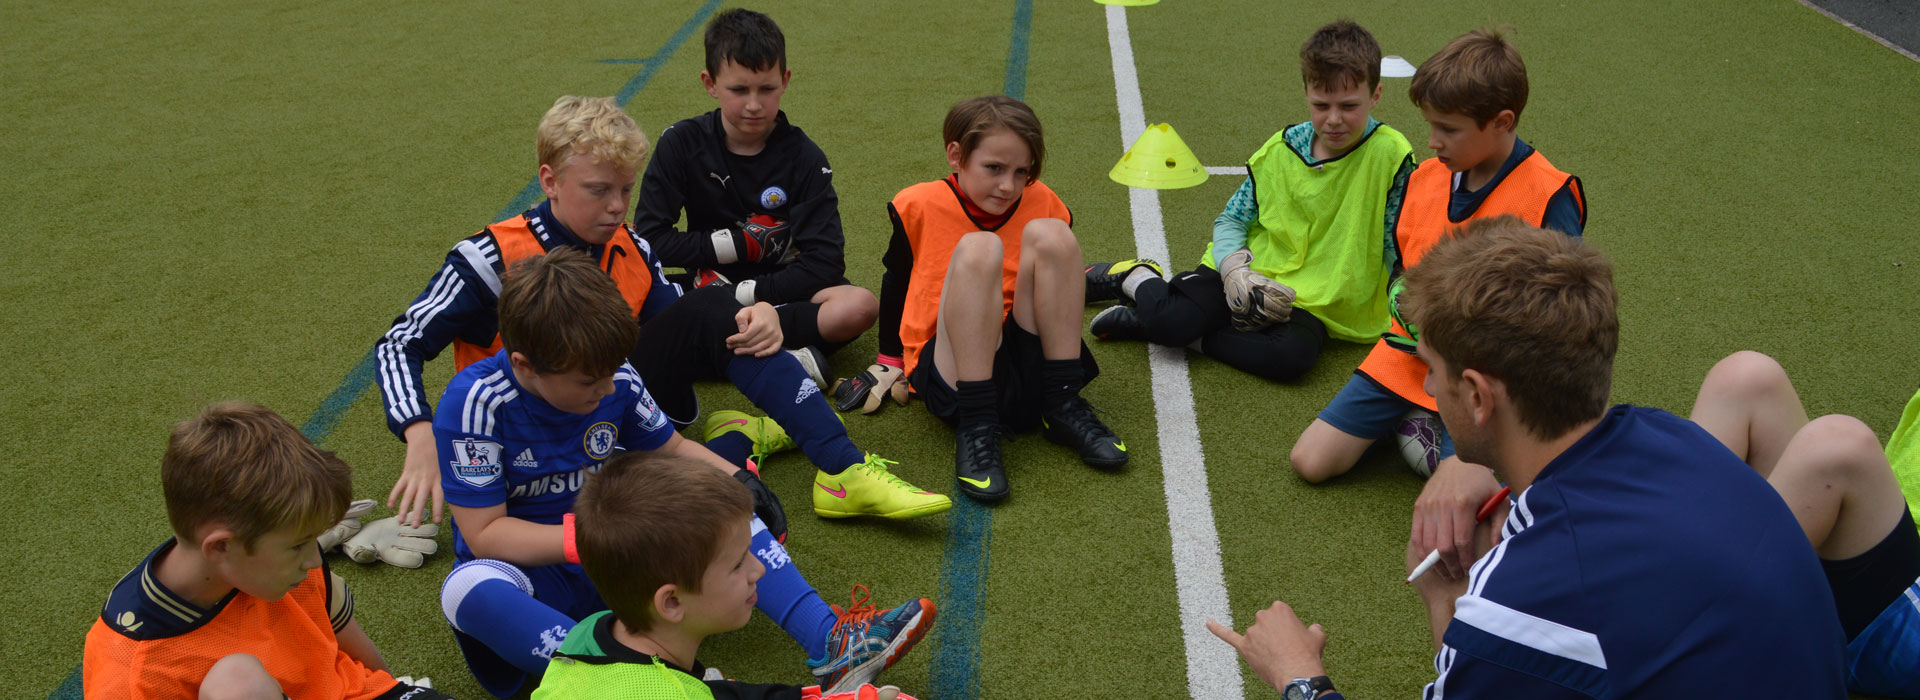 West Brom coaching course at Malvern Active